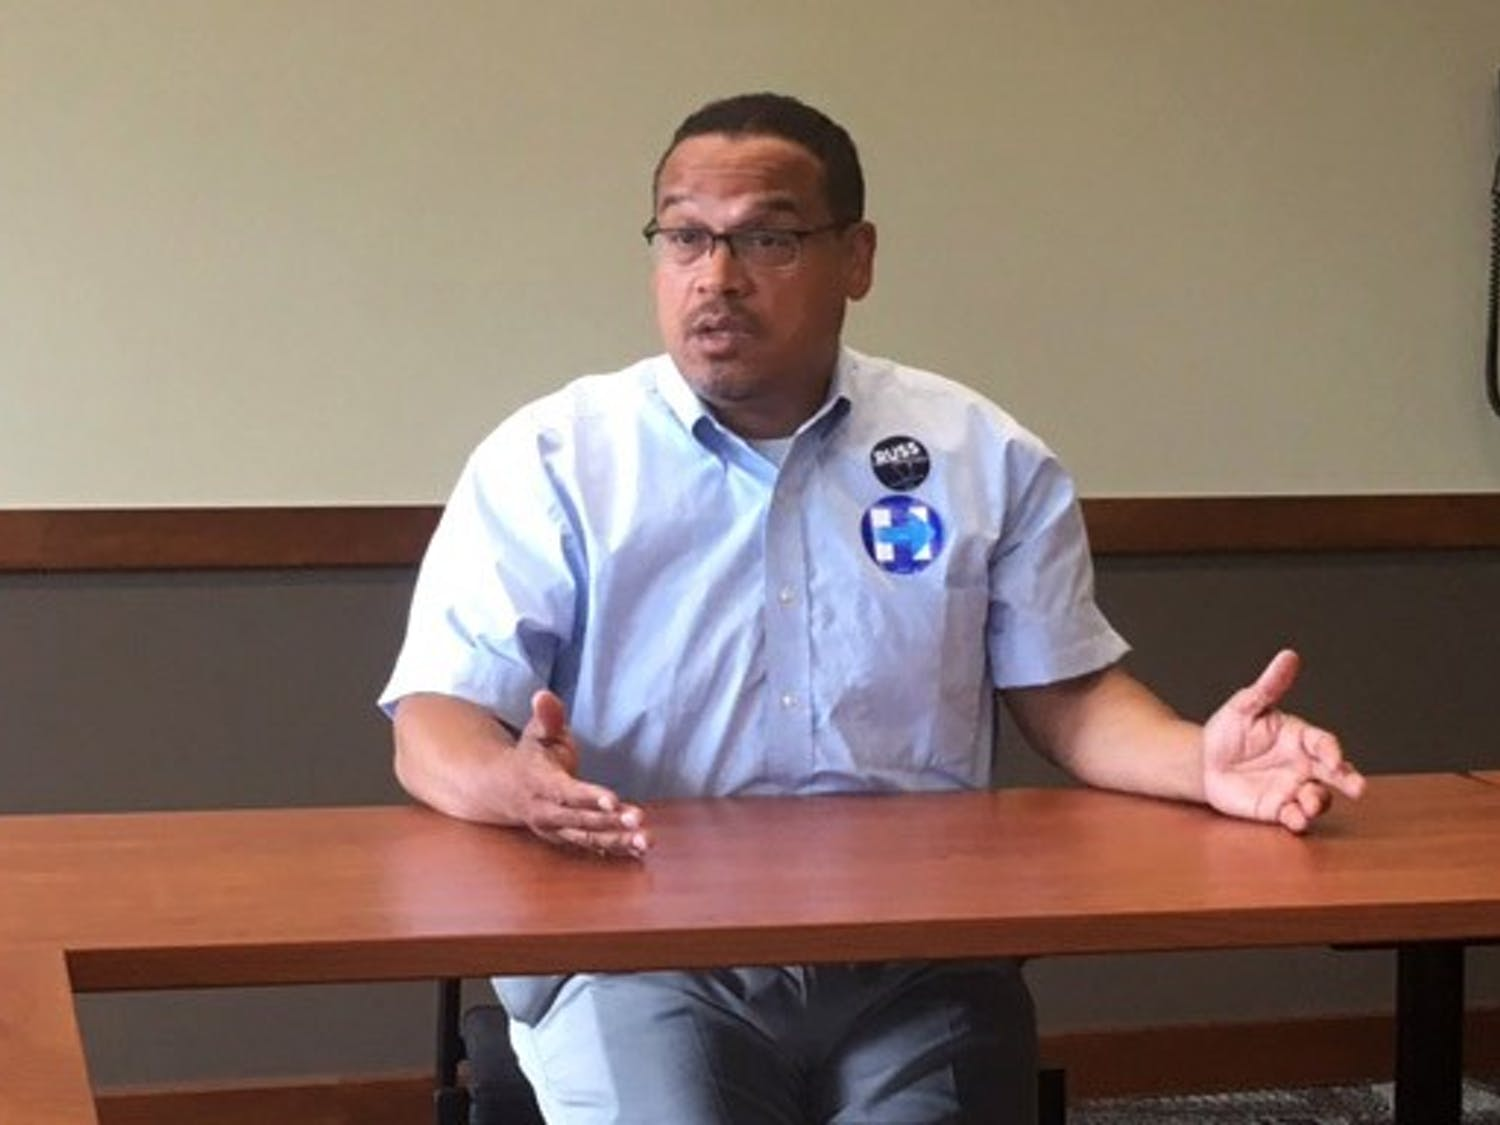 Minnesota Rep. Keith Ellison announced Monday he will be run to be chair of the Democratic National Committee.